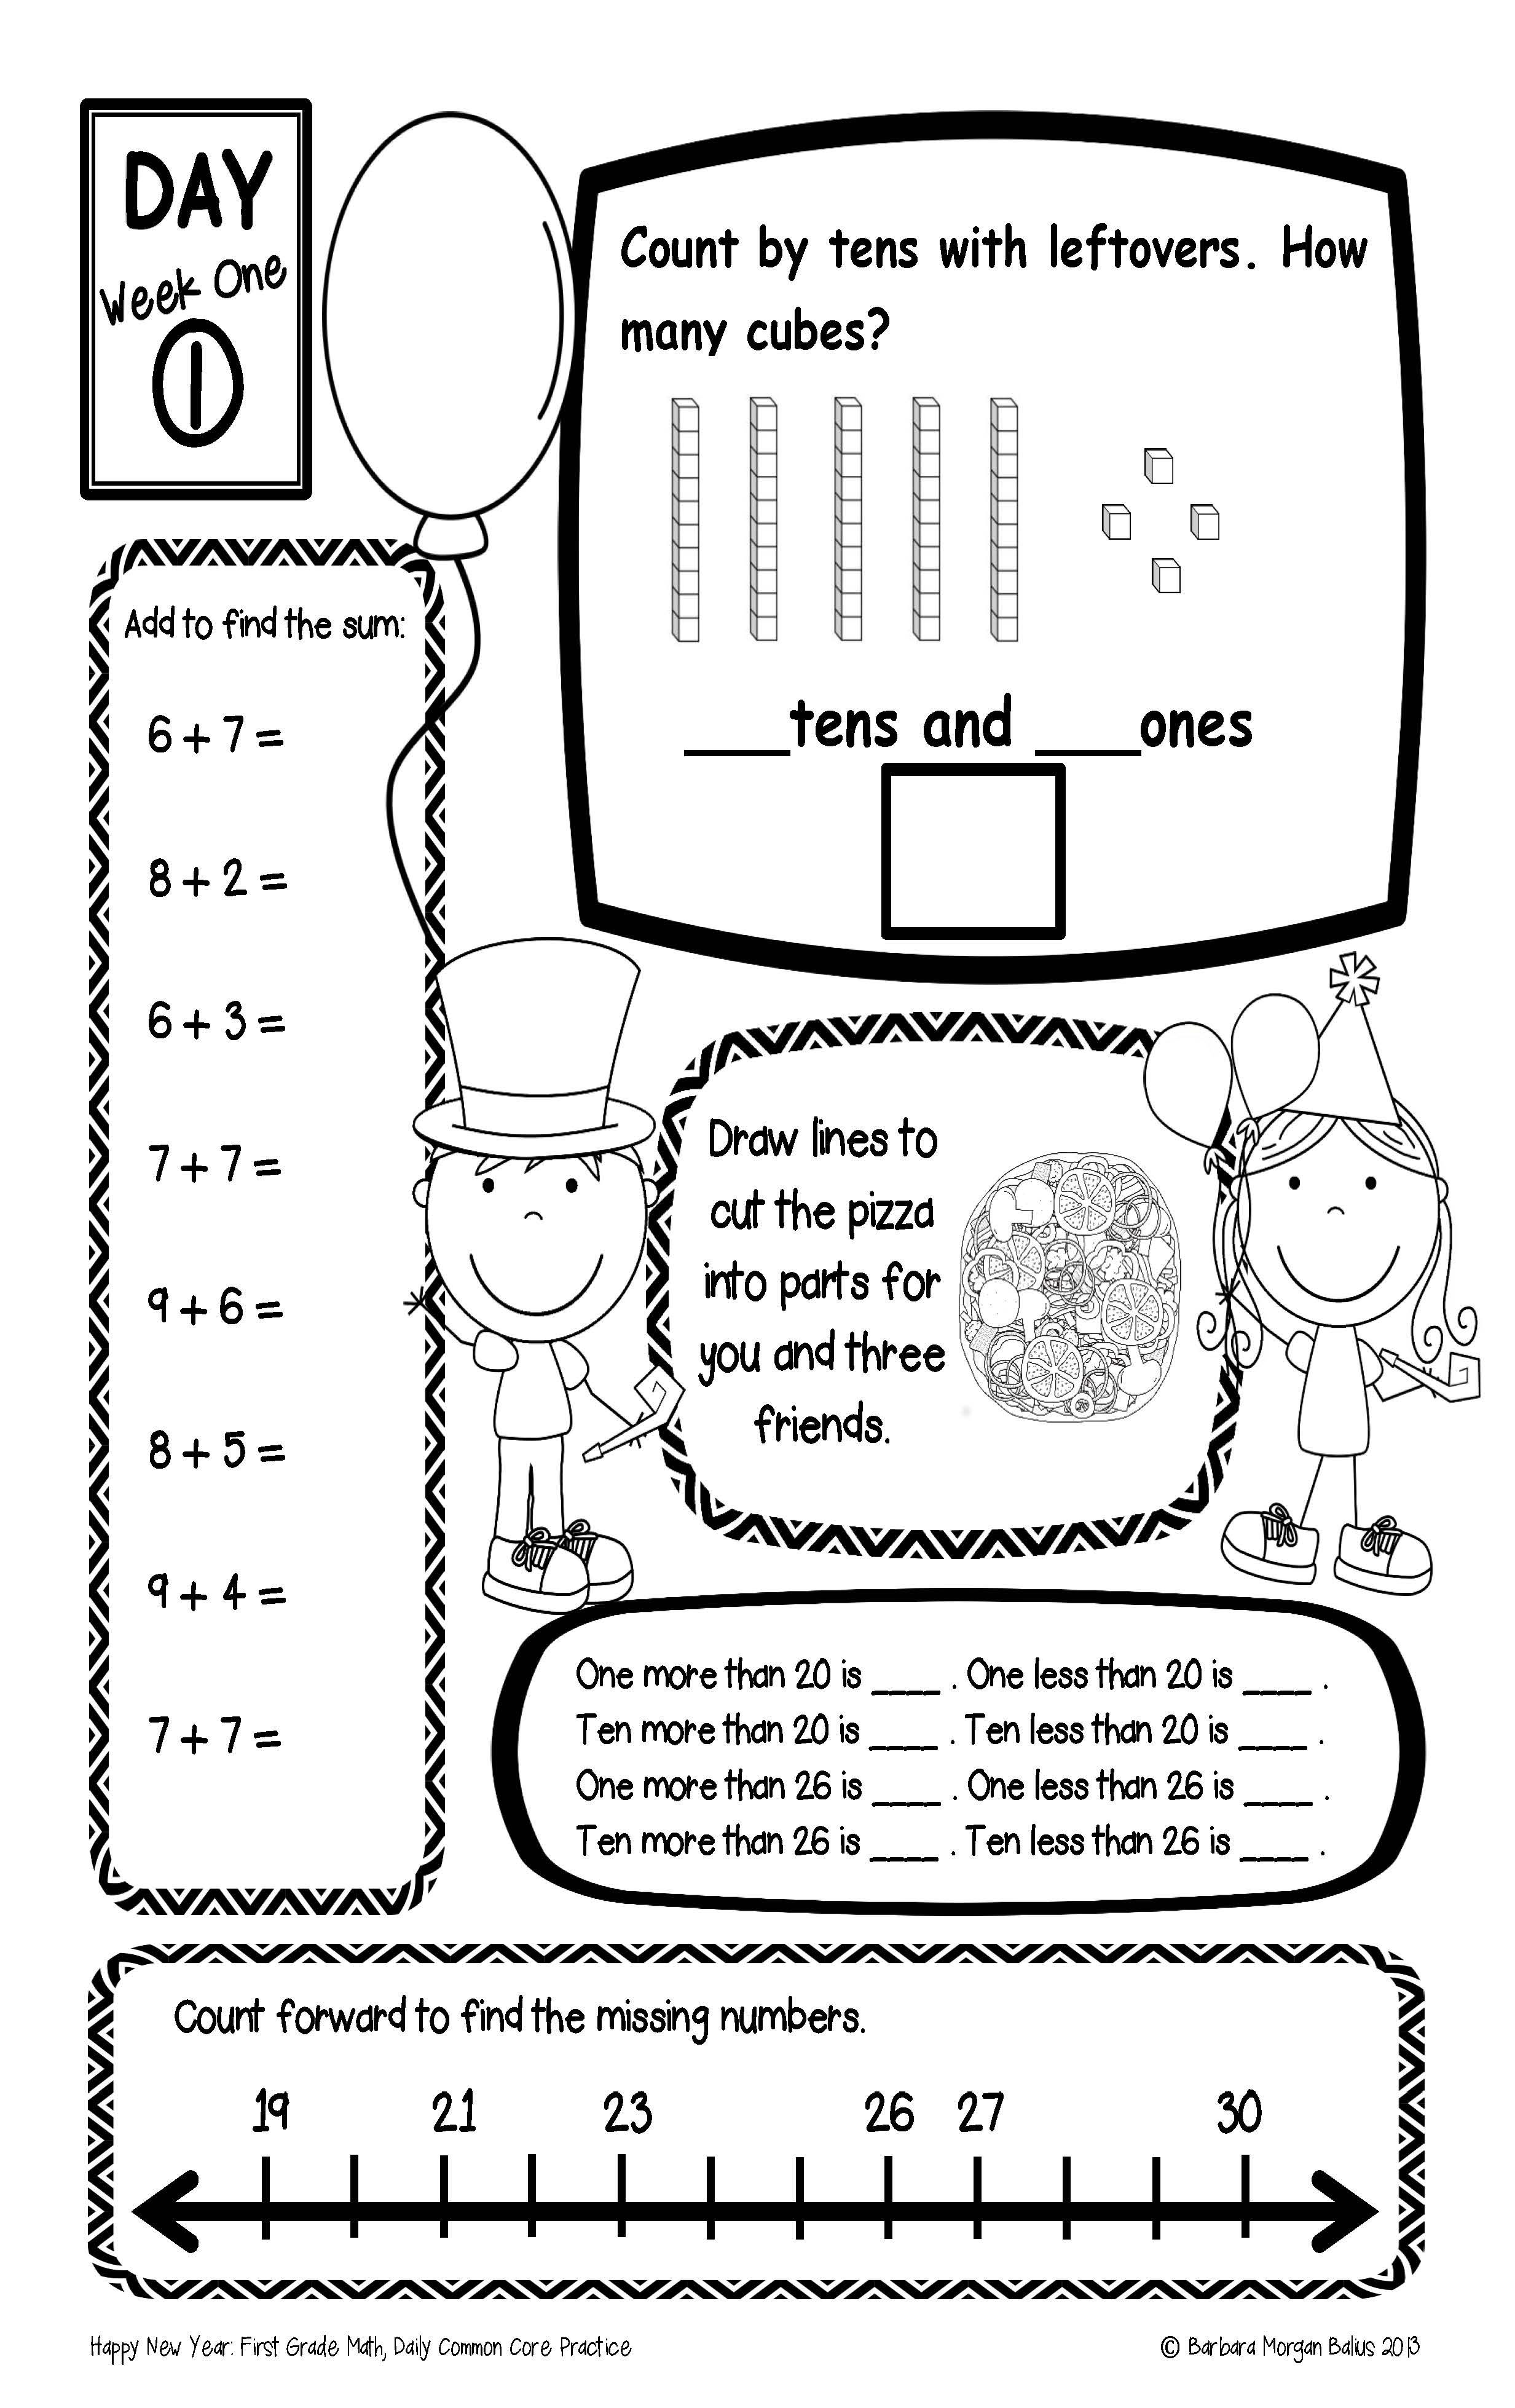 Happy New Year Common Core Daily Math Is Here Math Common Core Math Practices Free Math Worksheets